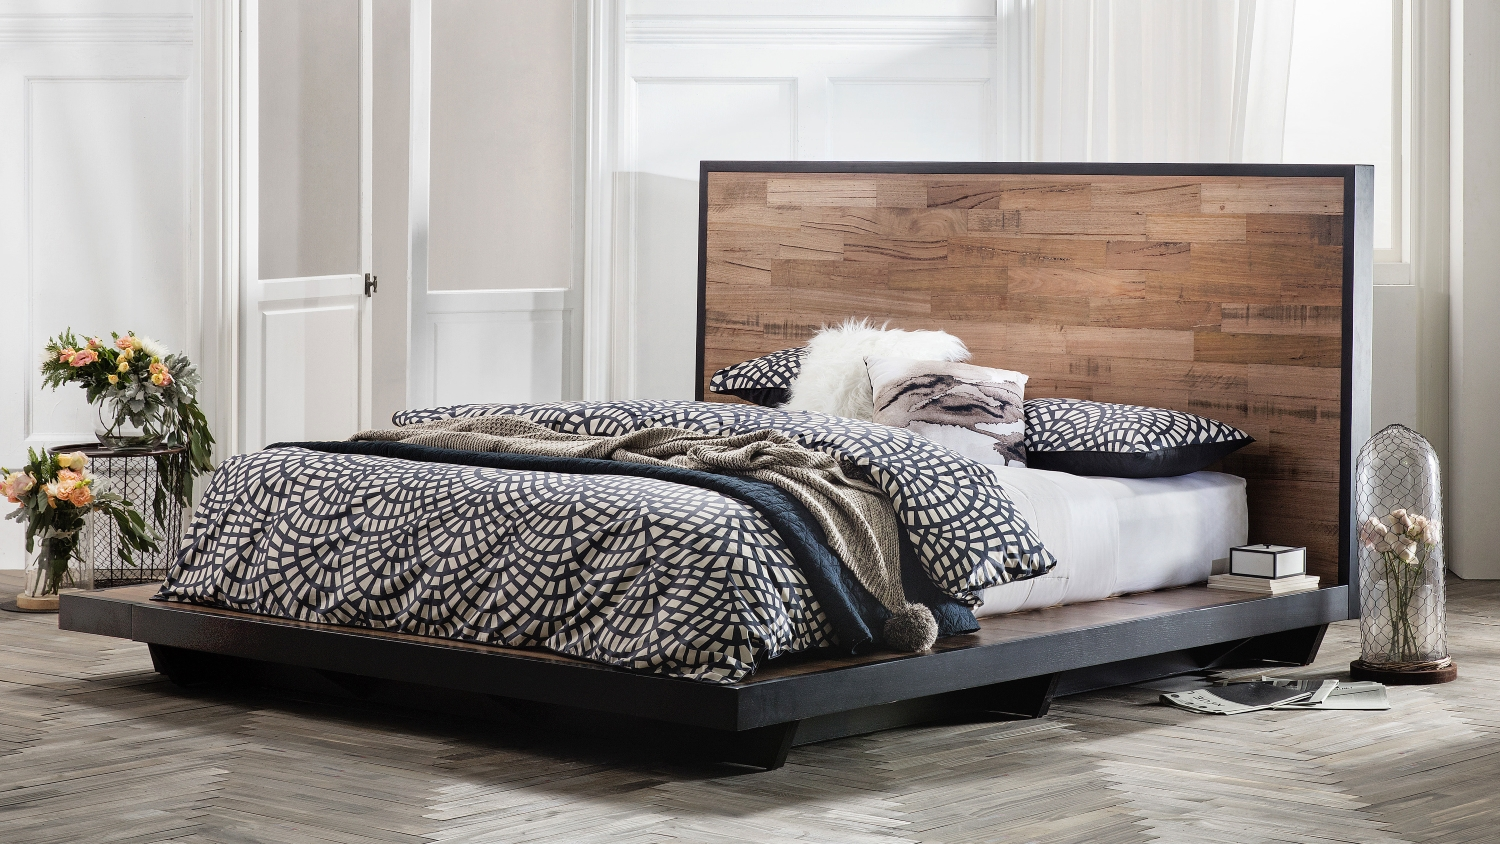 Queen Bed Frame Adelaide Abode Bed Frame Domayne